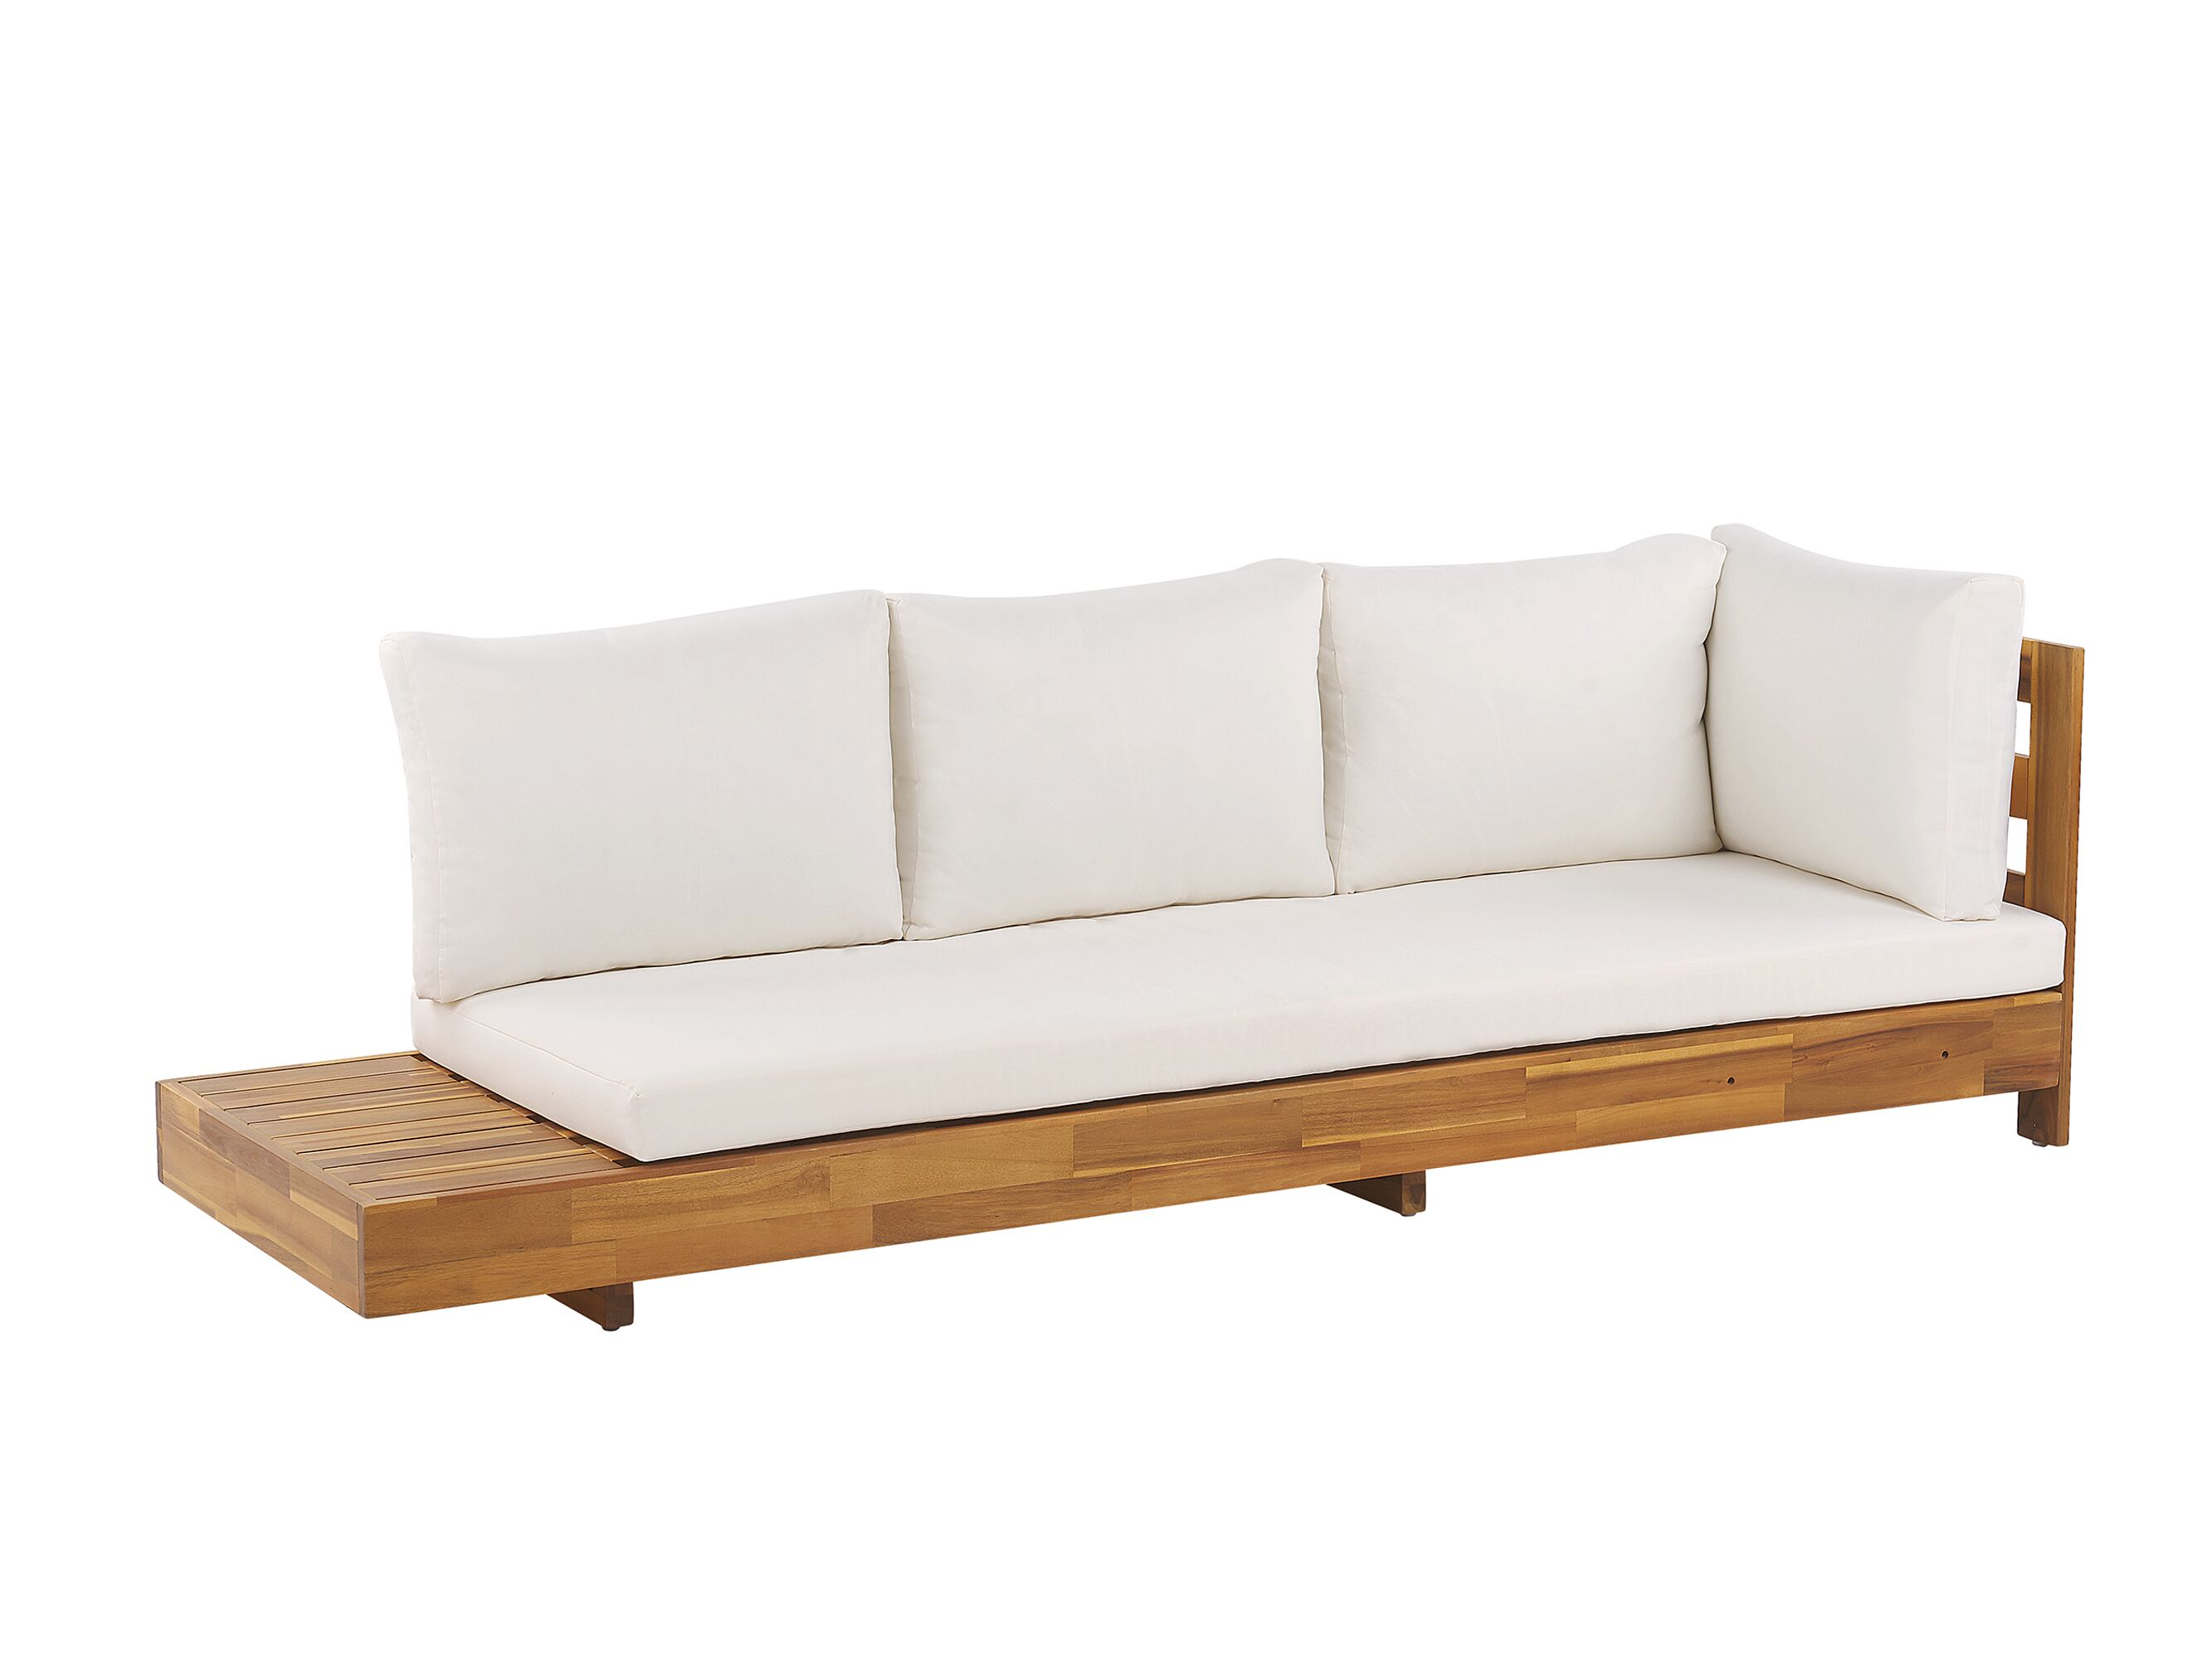 5 Seater Acacia Wood Garden Corner Sofa Set White Marettimo Beliani At